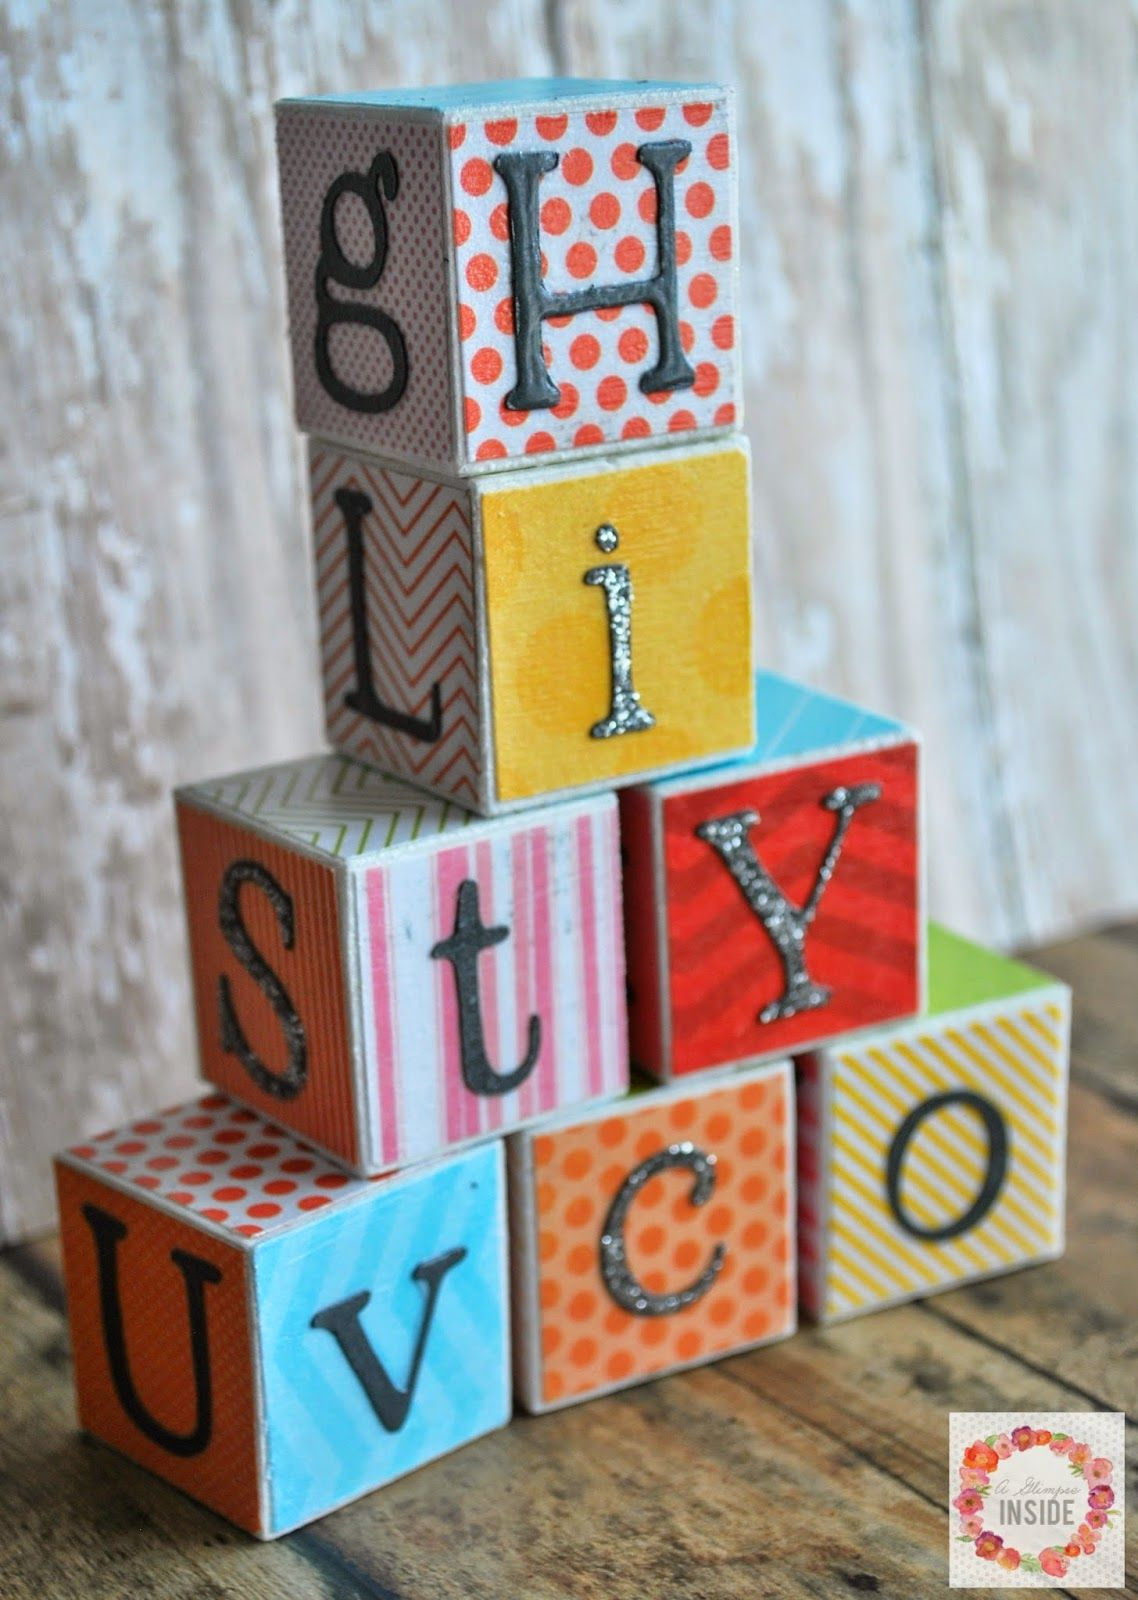 DIY Alphabet Block have different letters attached to each side, primarily on perfect cubes